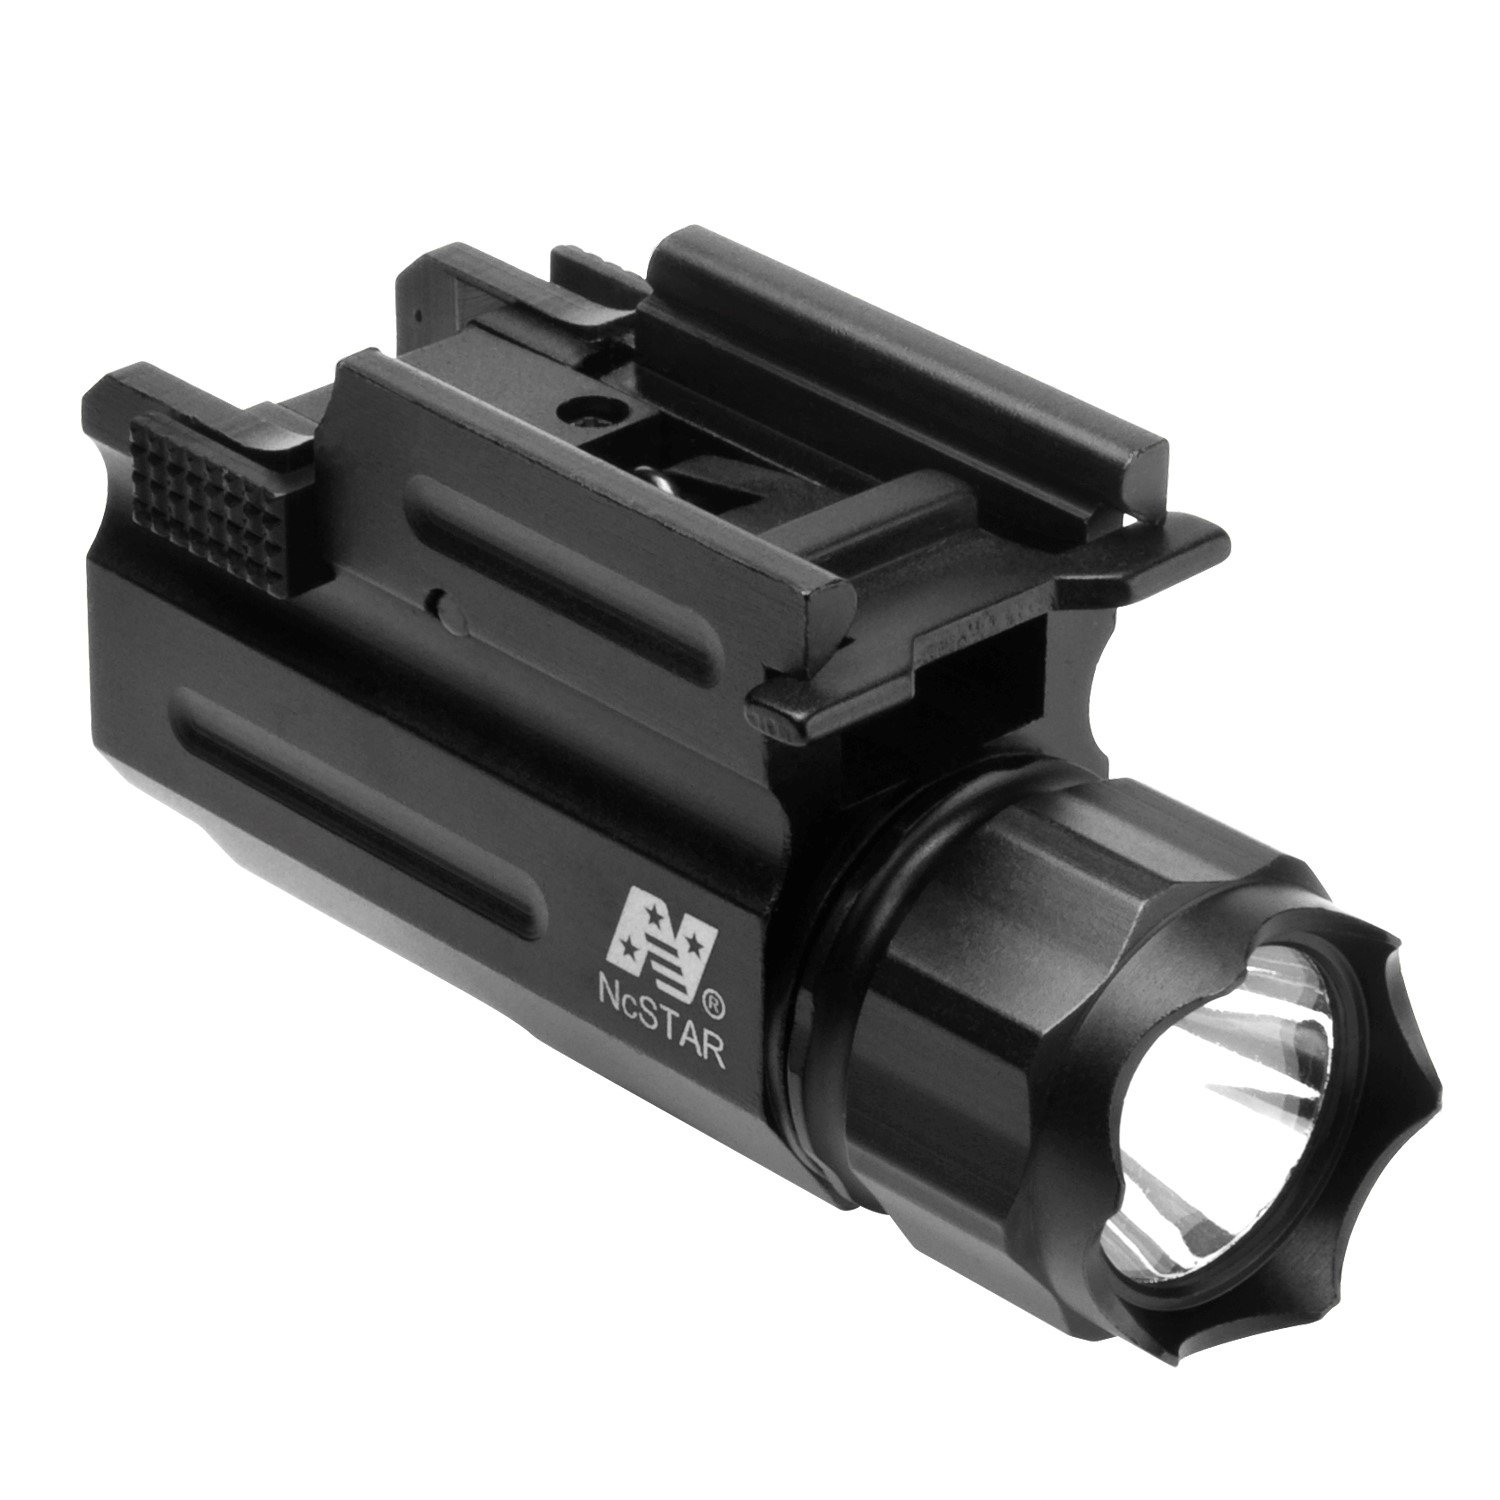 NcStar Pistol and Rifle Quick Release Weaver